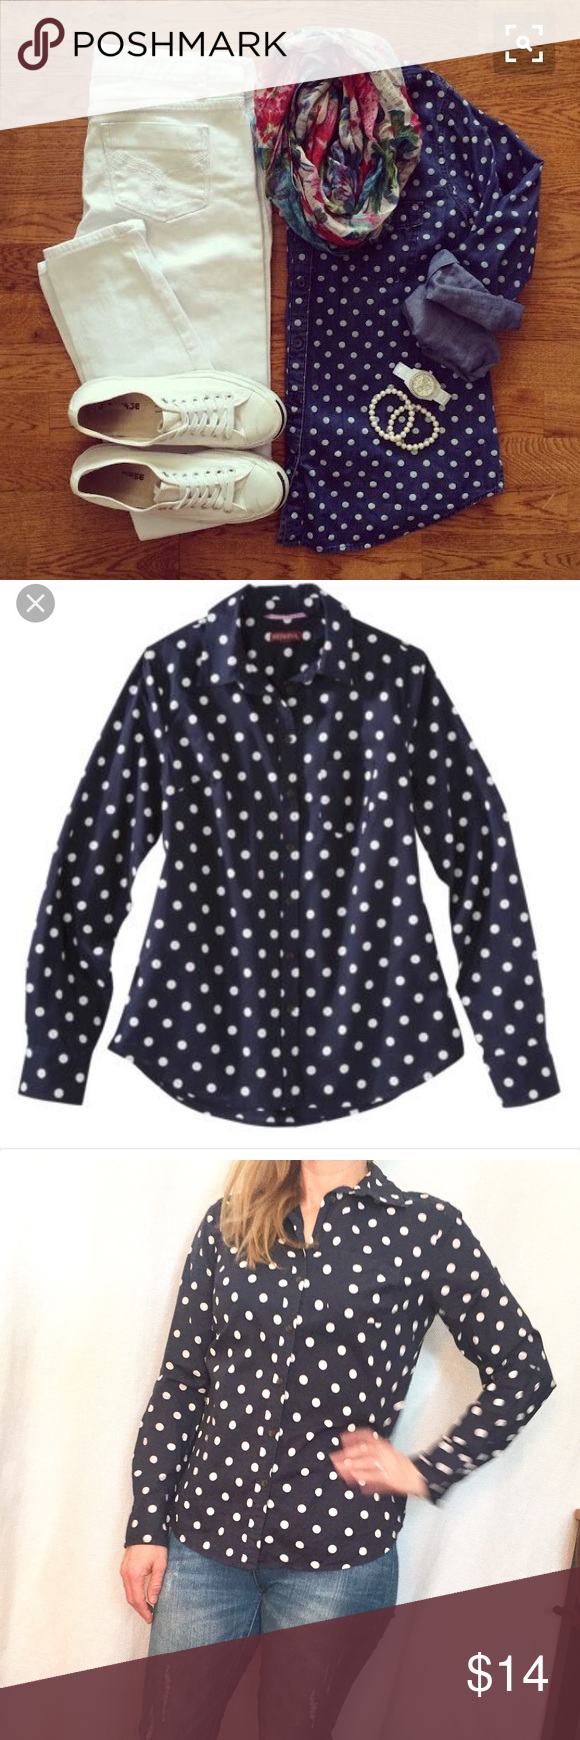 "Navy Polka Dot Button Up Oxford Shirt A preppy classic! Navy with ivory dots. Measures 17.5"" armpit to armpit flat across and 23"" shoulder to hem length. In good condition! Tops Button Down Shirts"